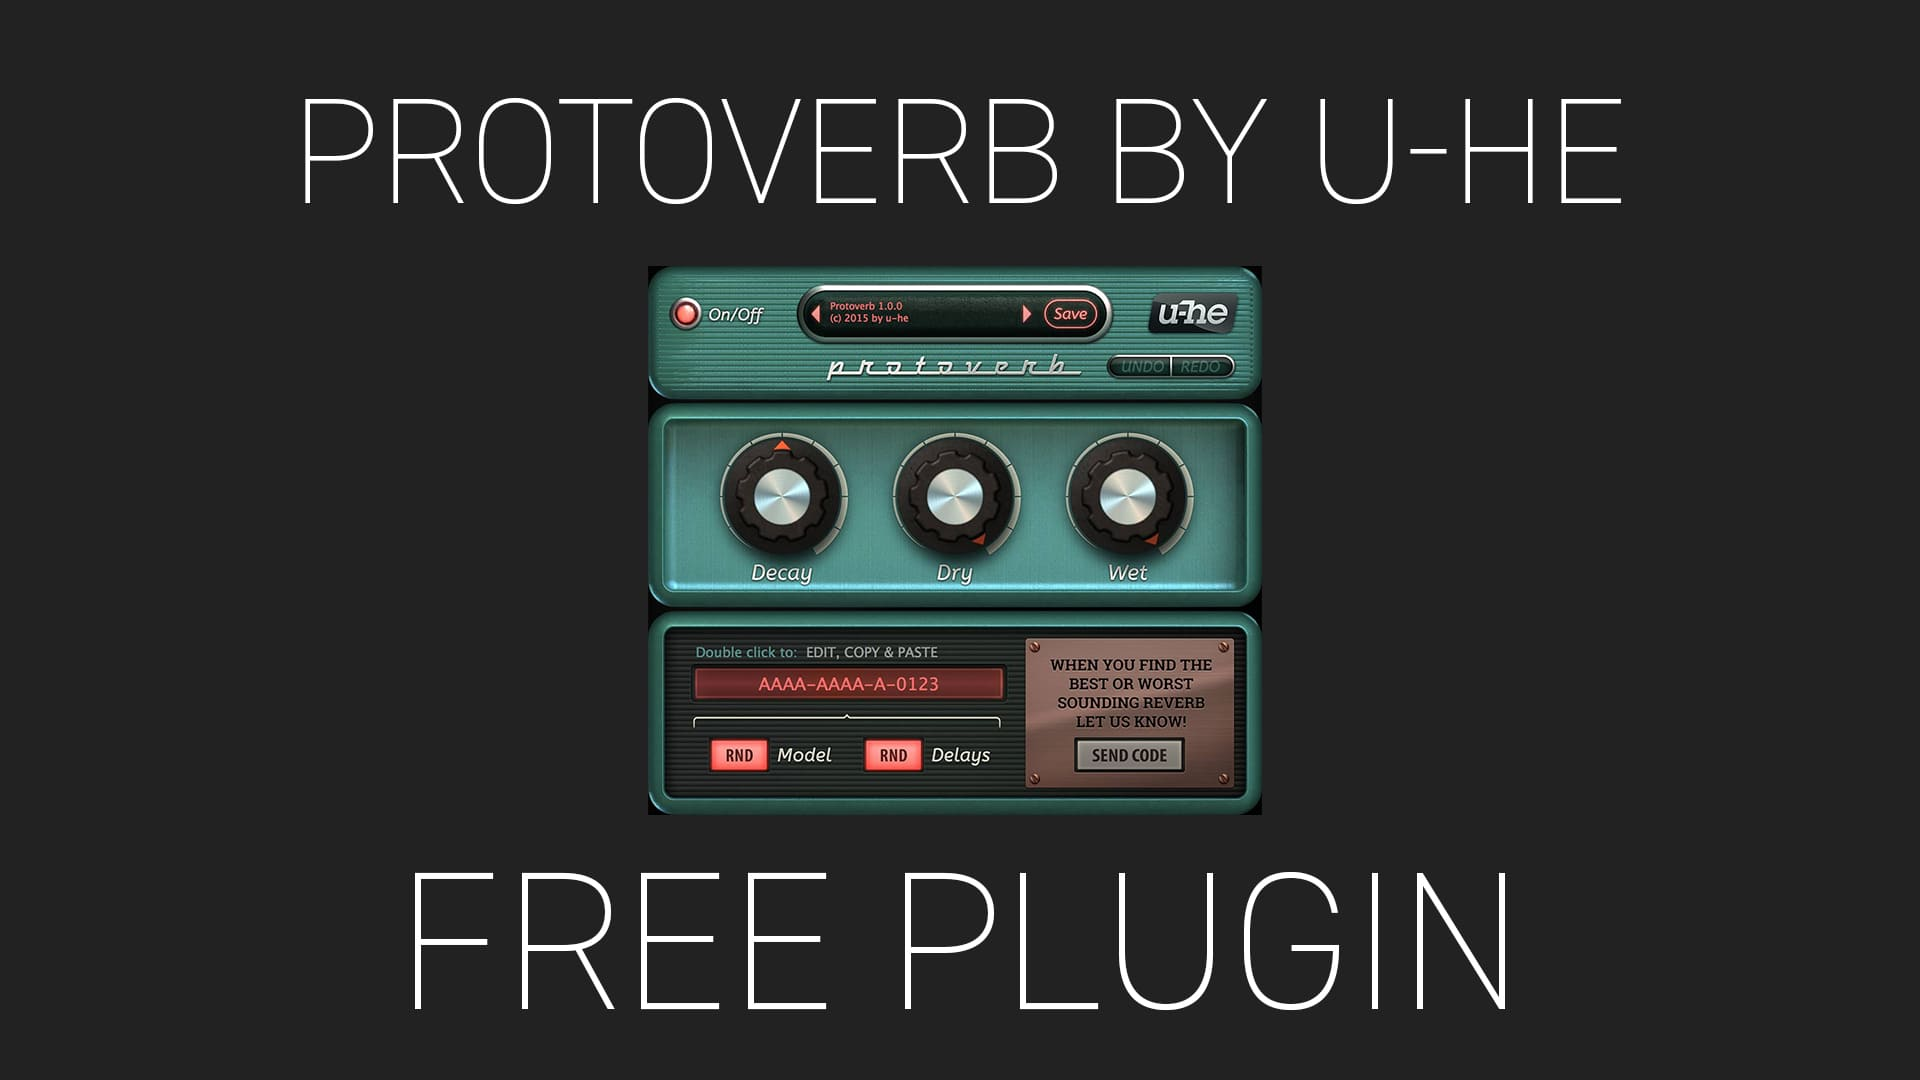 Protoverb by u-he Free Plugin